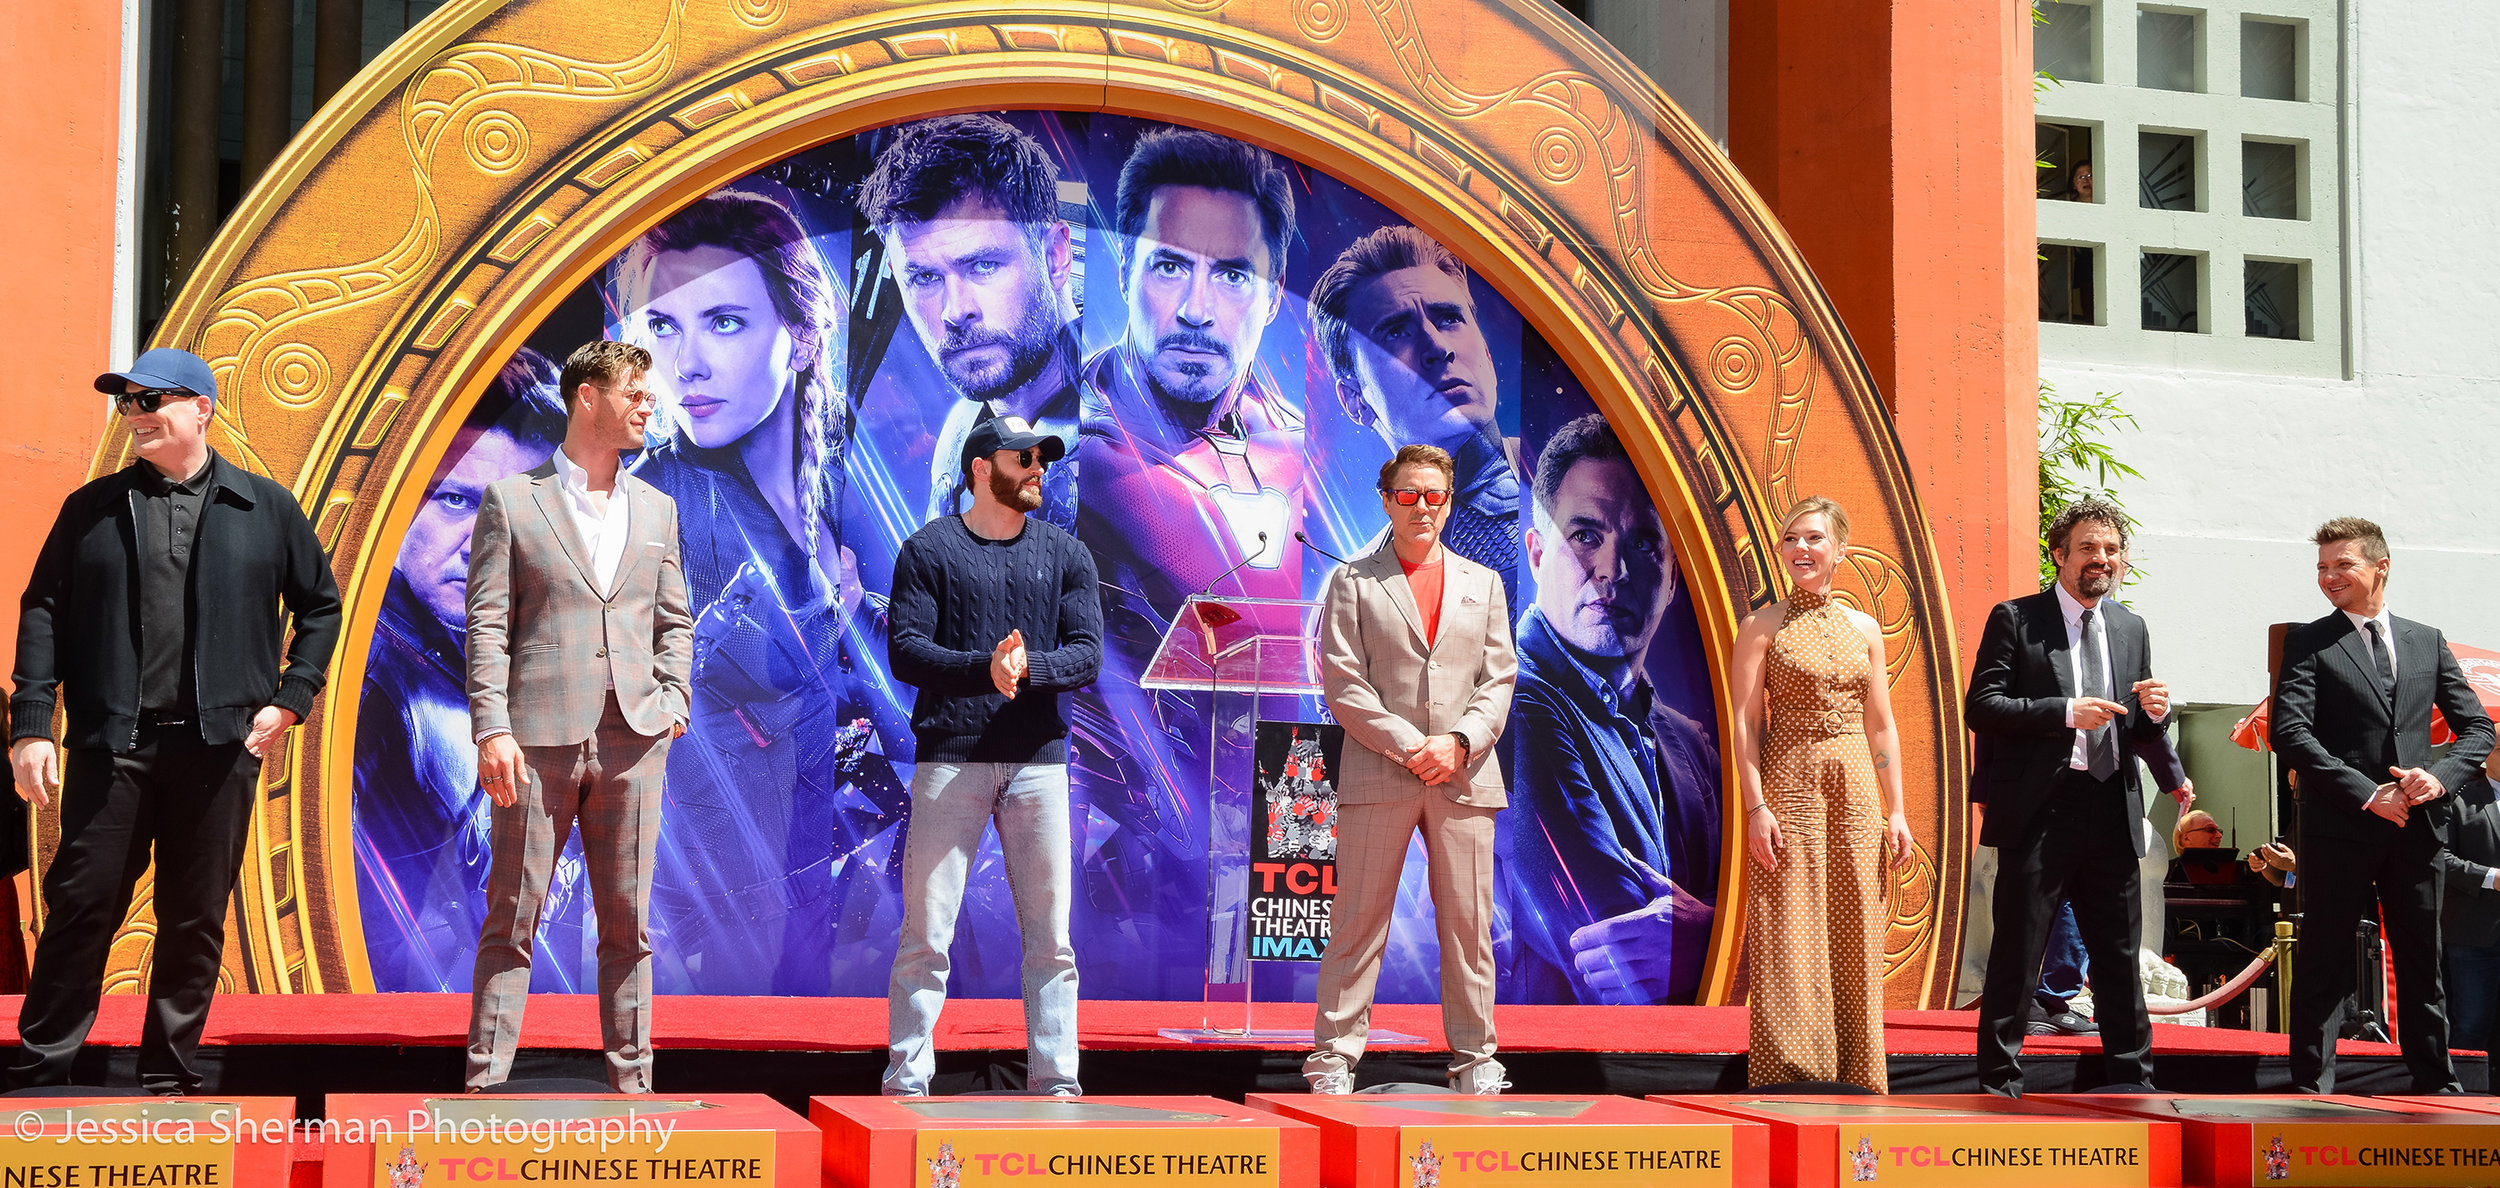 Avengers-Cast-Wide-Angle-0948-WEBSITE.jpg